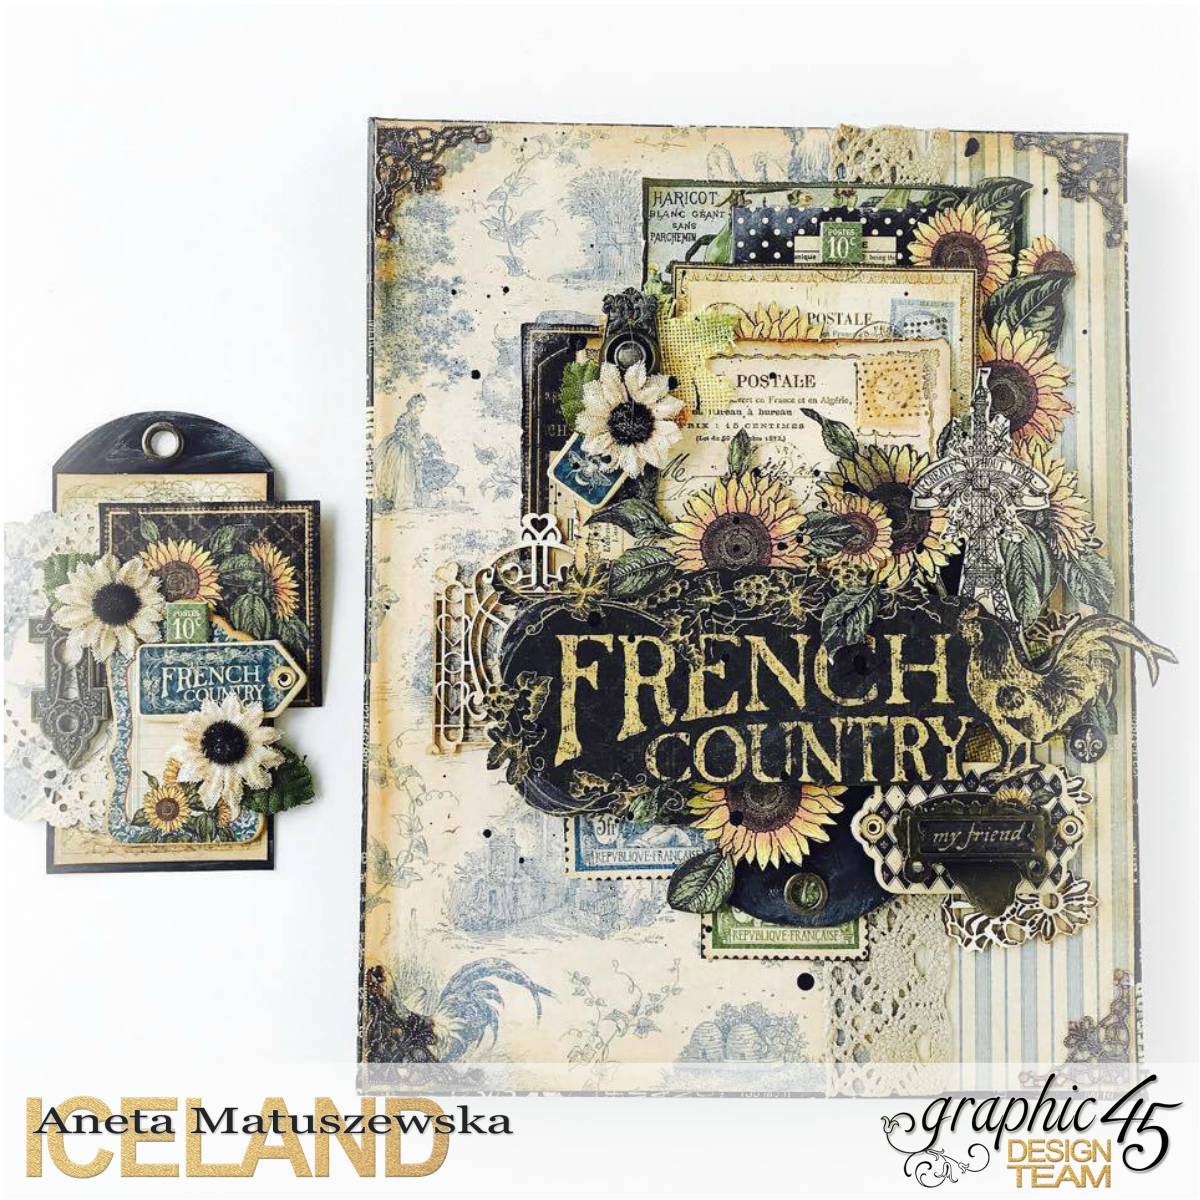 French Country canvas and tag for Graphic 45, by Aneta Matuszewska, photo 1.png